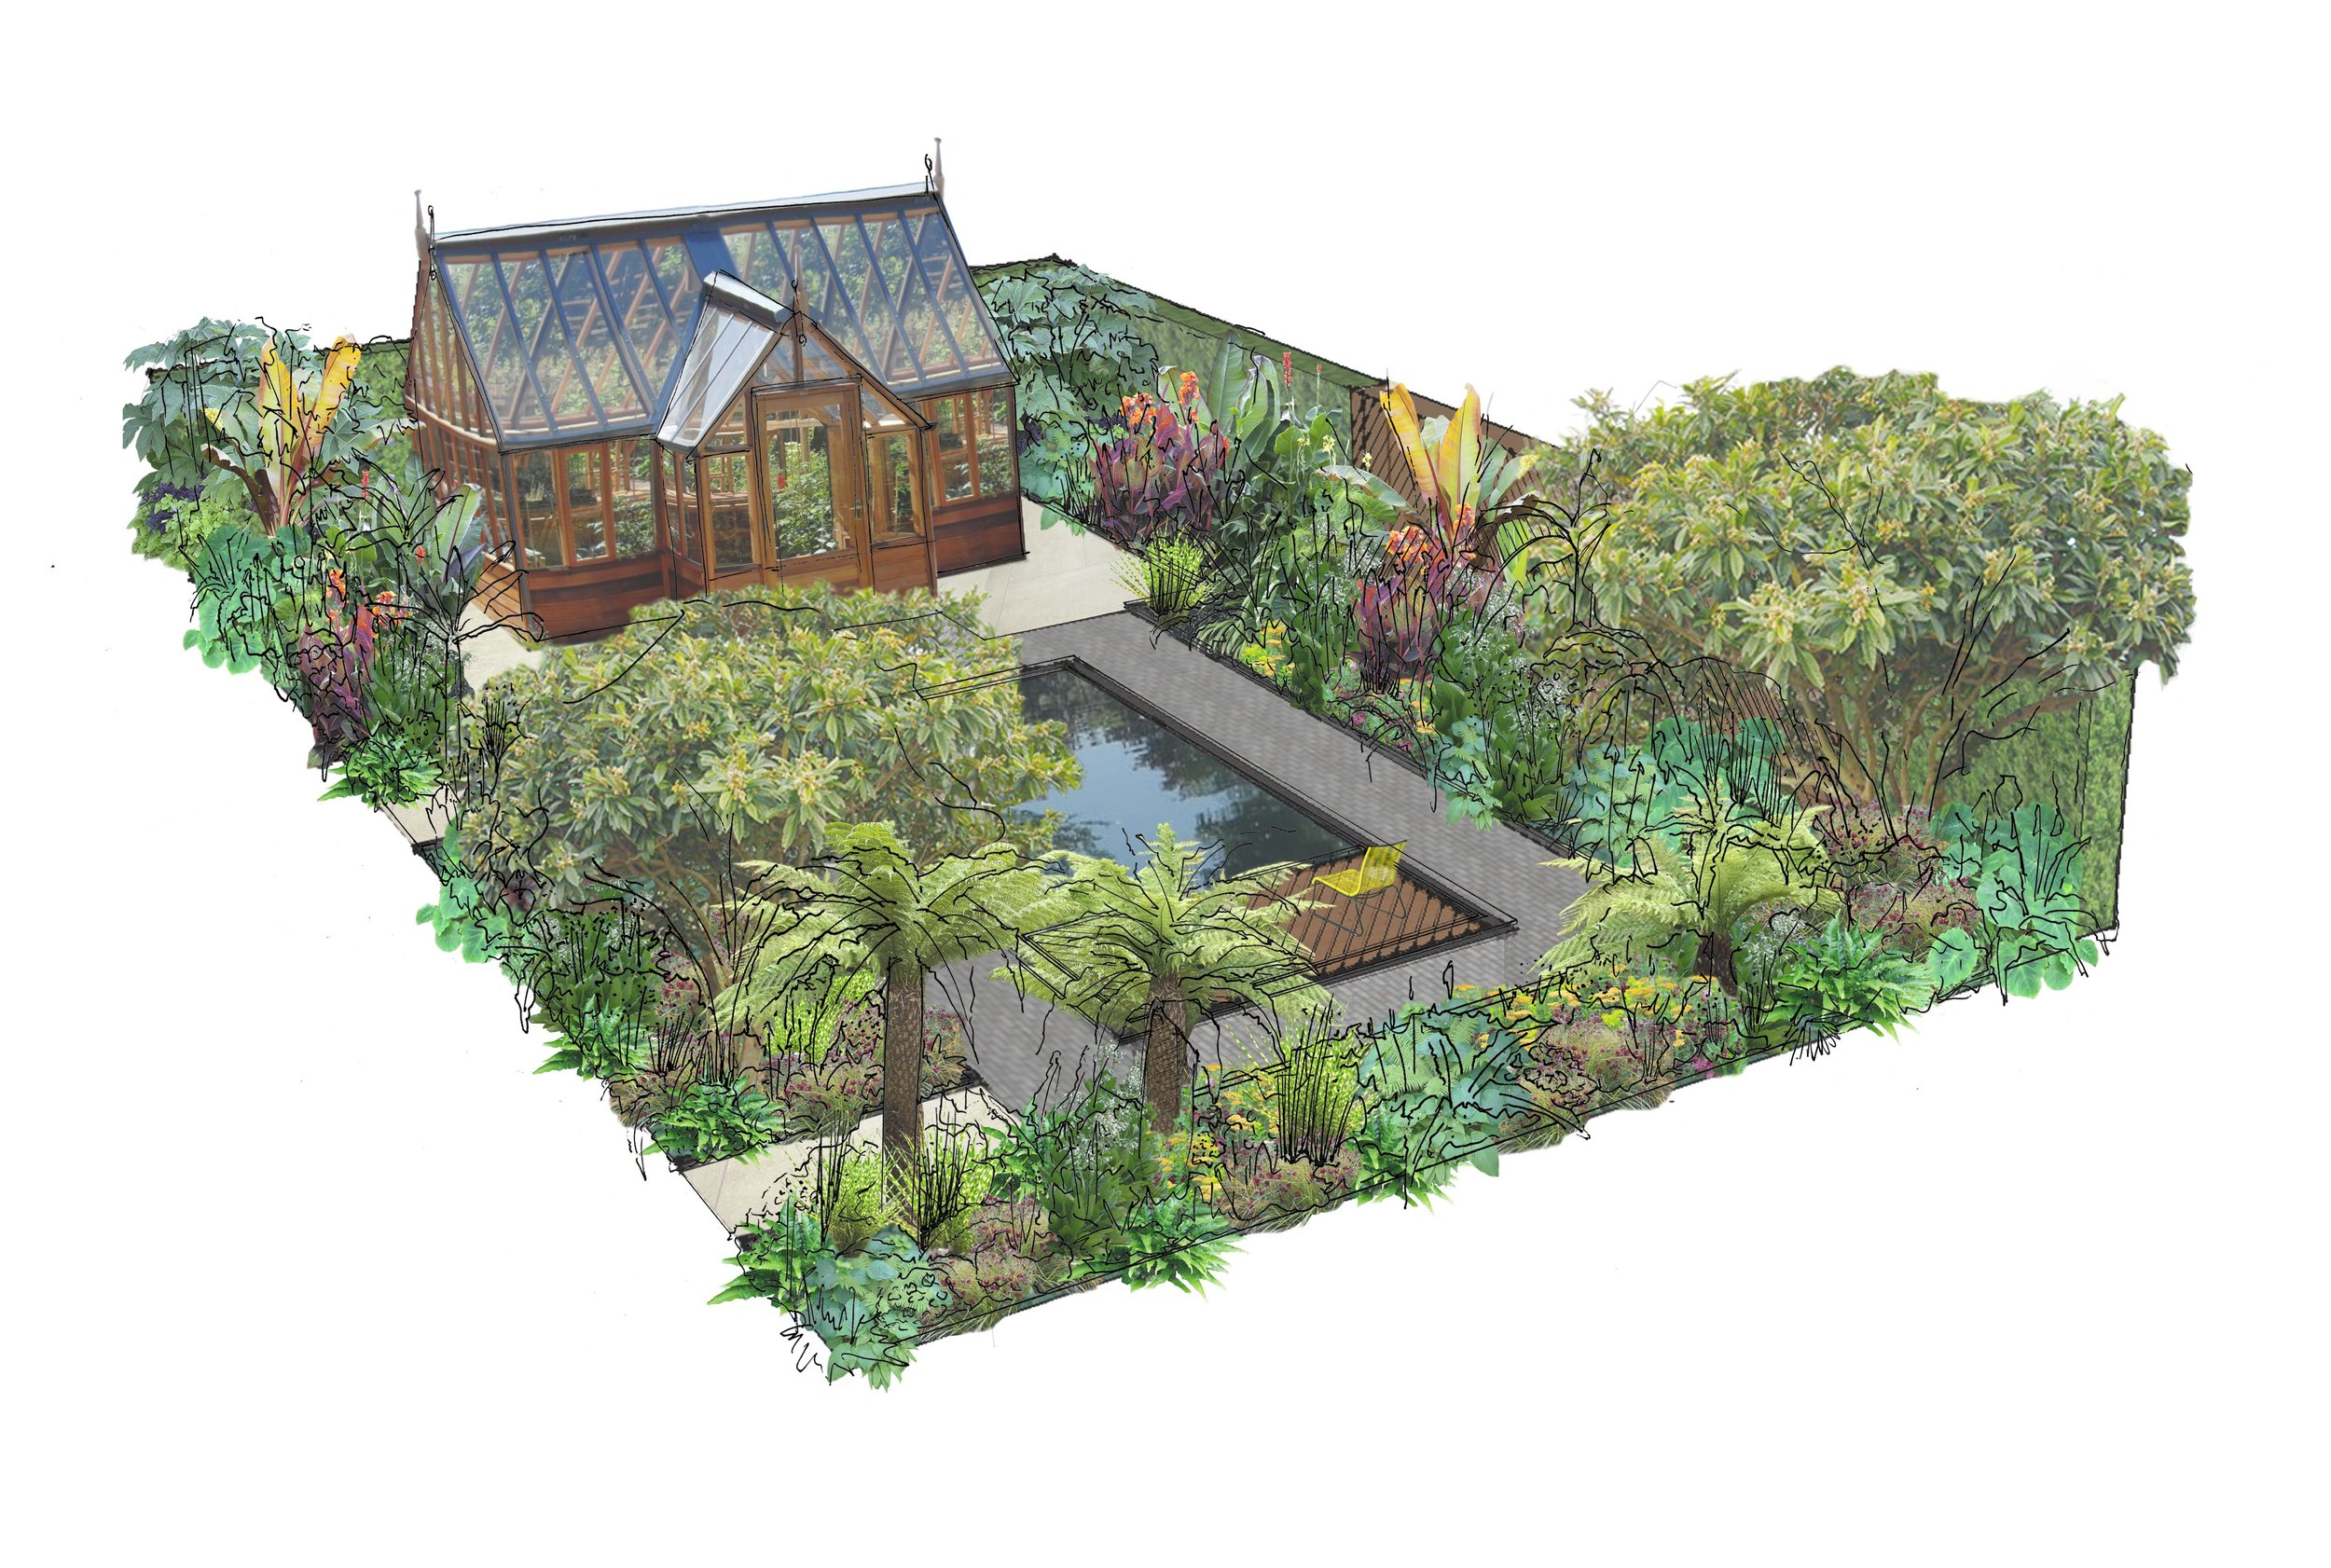 Lilly Gomm's design for the Gabriel Ash Greenhouse Garden at RHS Tatton Park Flower Show.